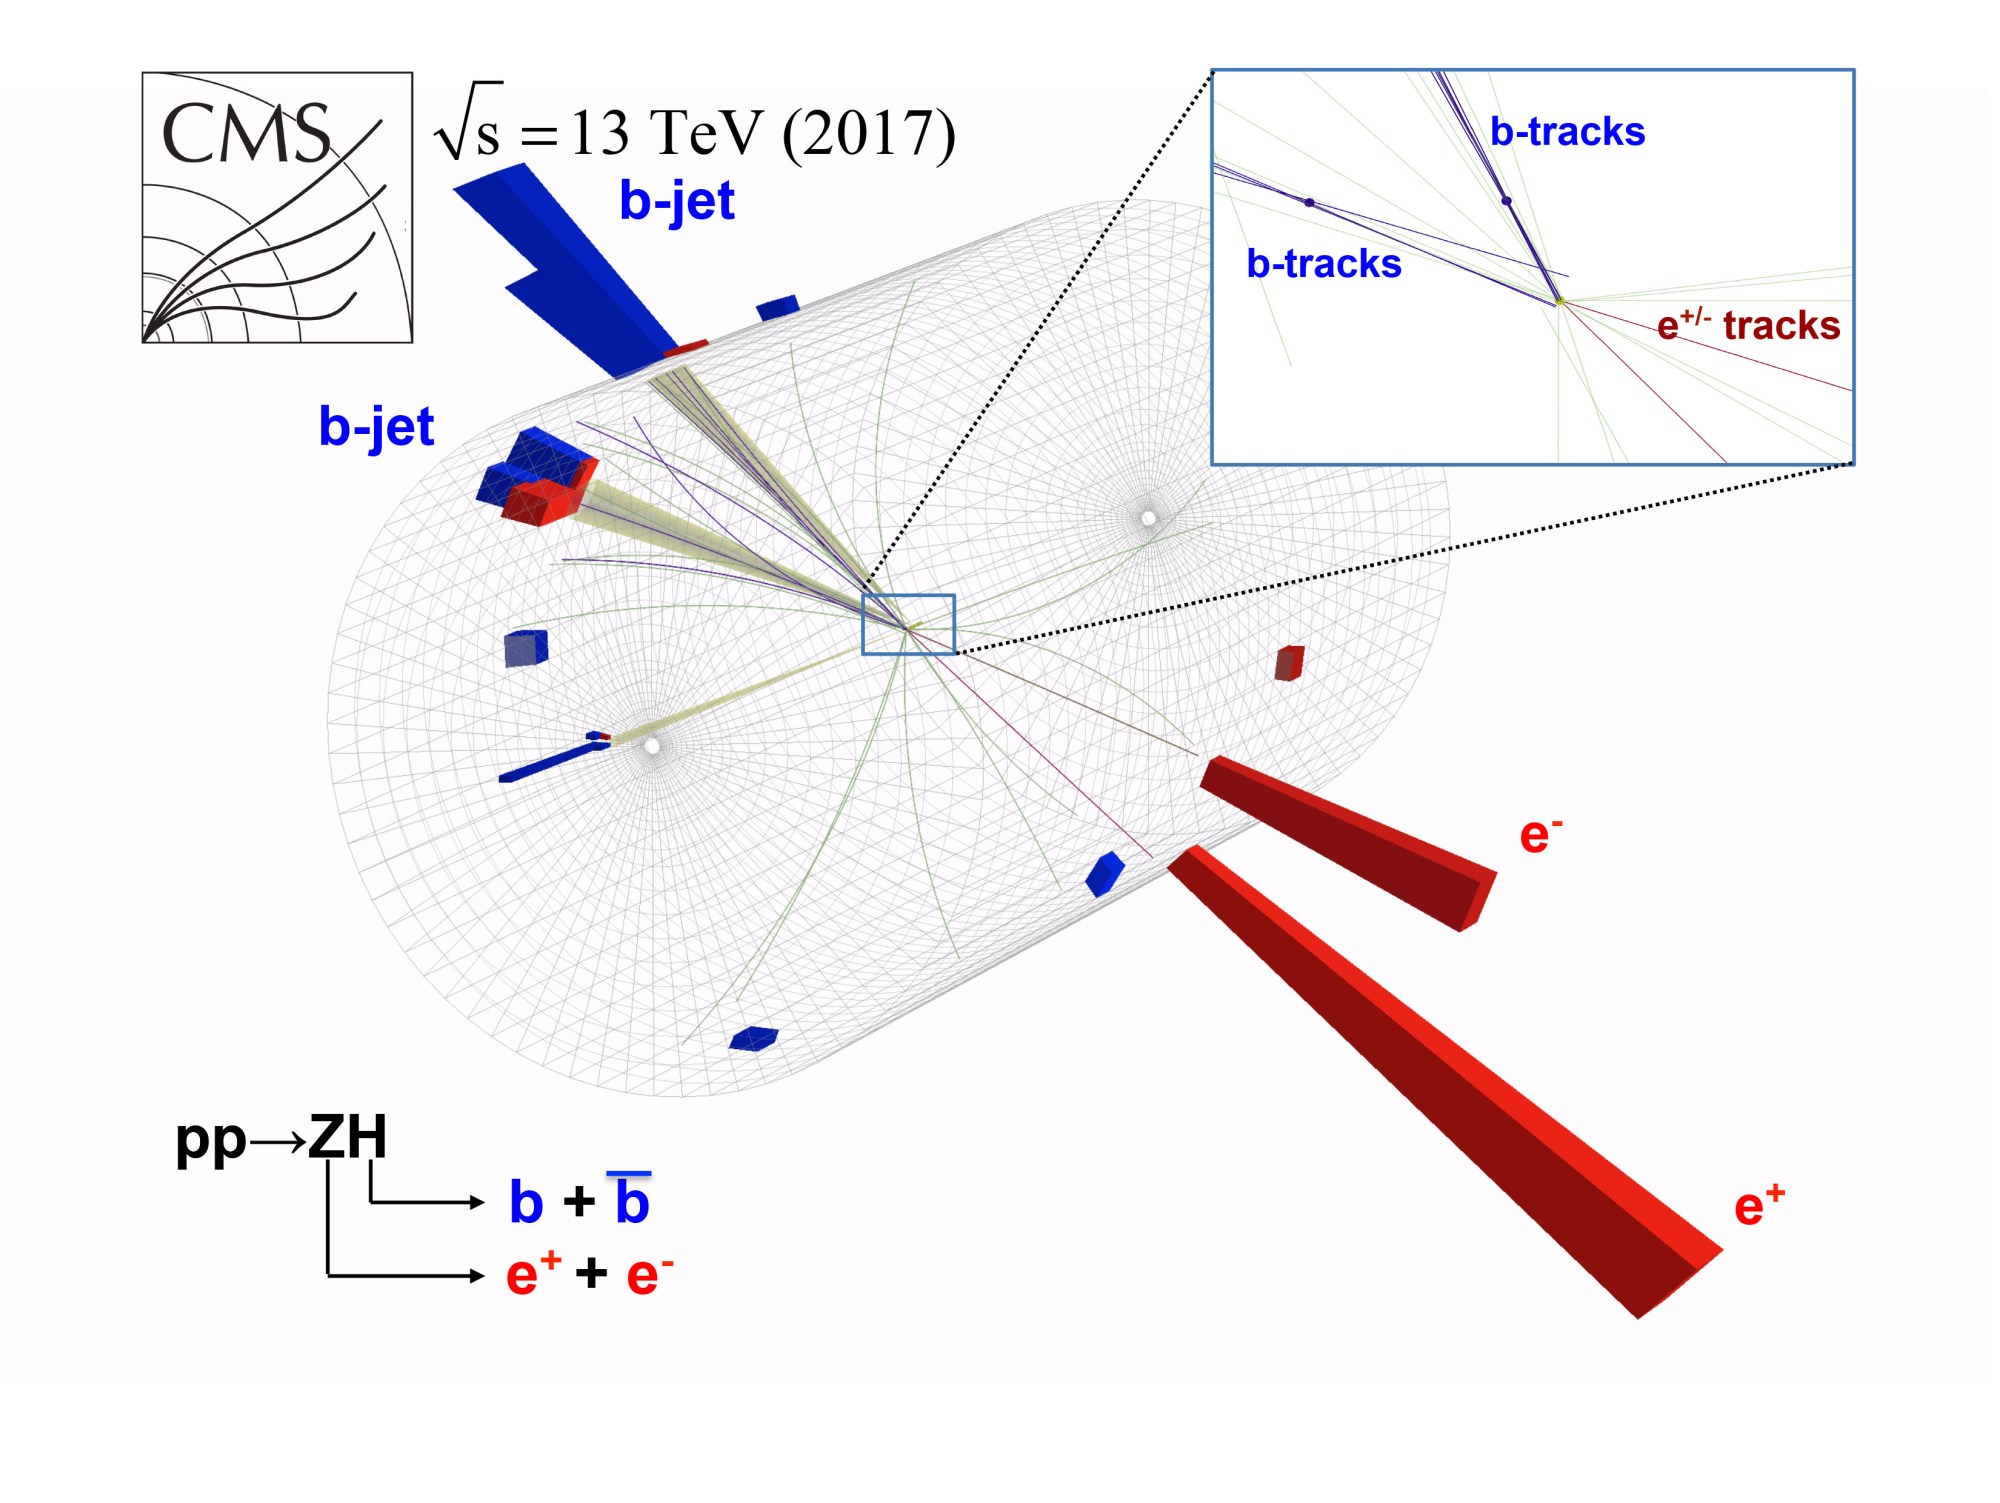 hight resolution of candidate event showing the associated production of a higgs boson and a z boson with the subsequent decay of the higgs boson to a bottom quark and its